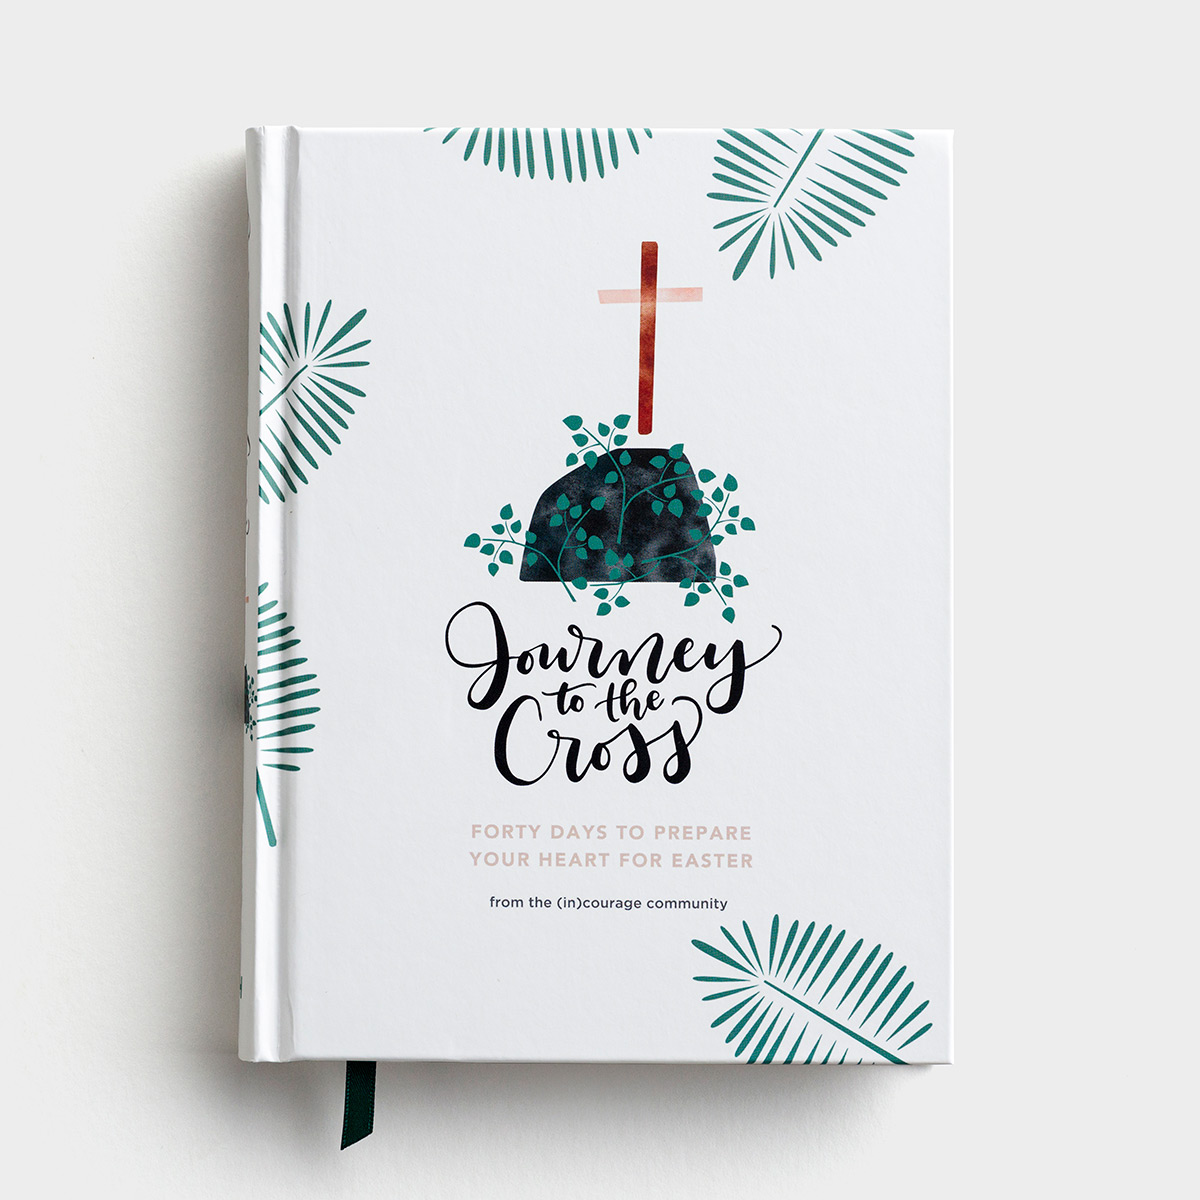 (in) courage - Journey to the Cross - Guided Devotional